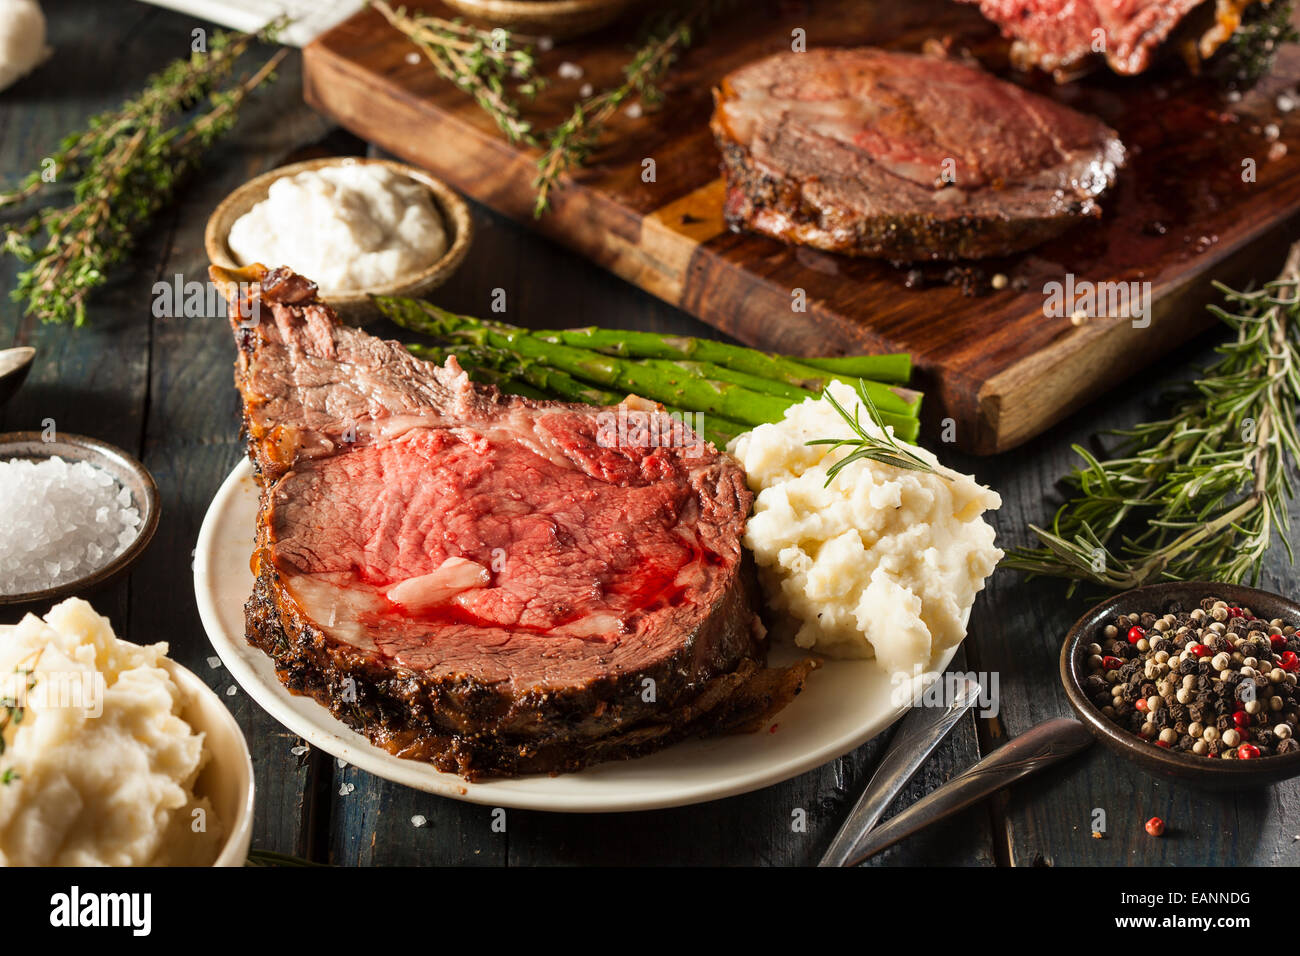 Homemade Grass Fed Prime Rib Roast with Herbs and Spices - Stock Image